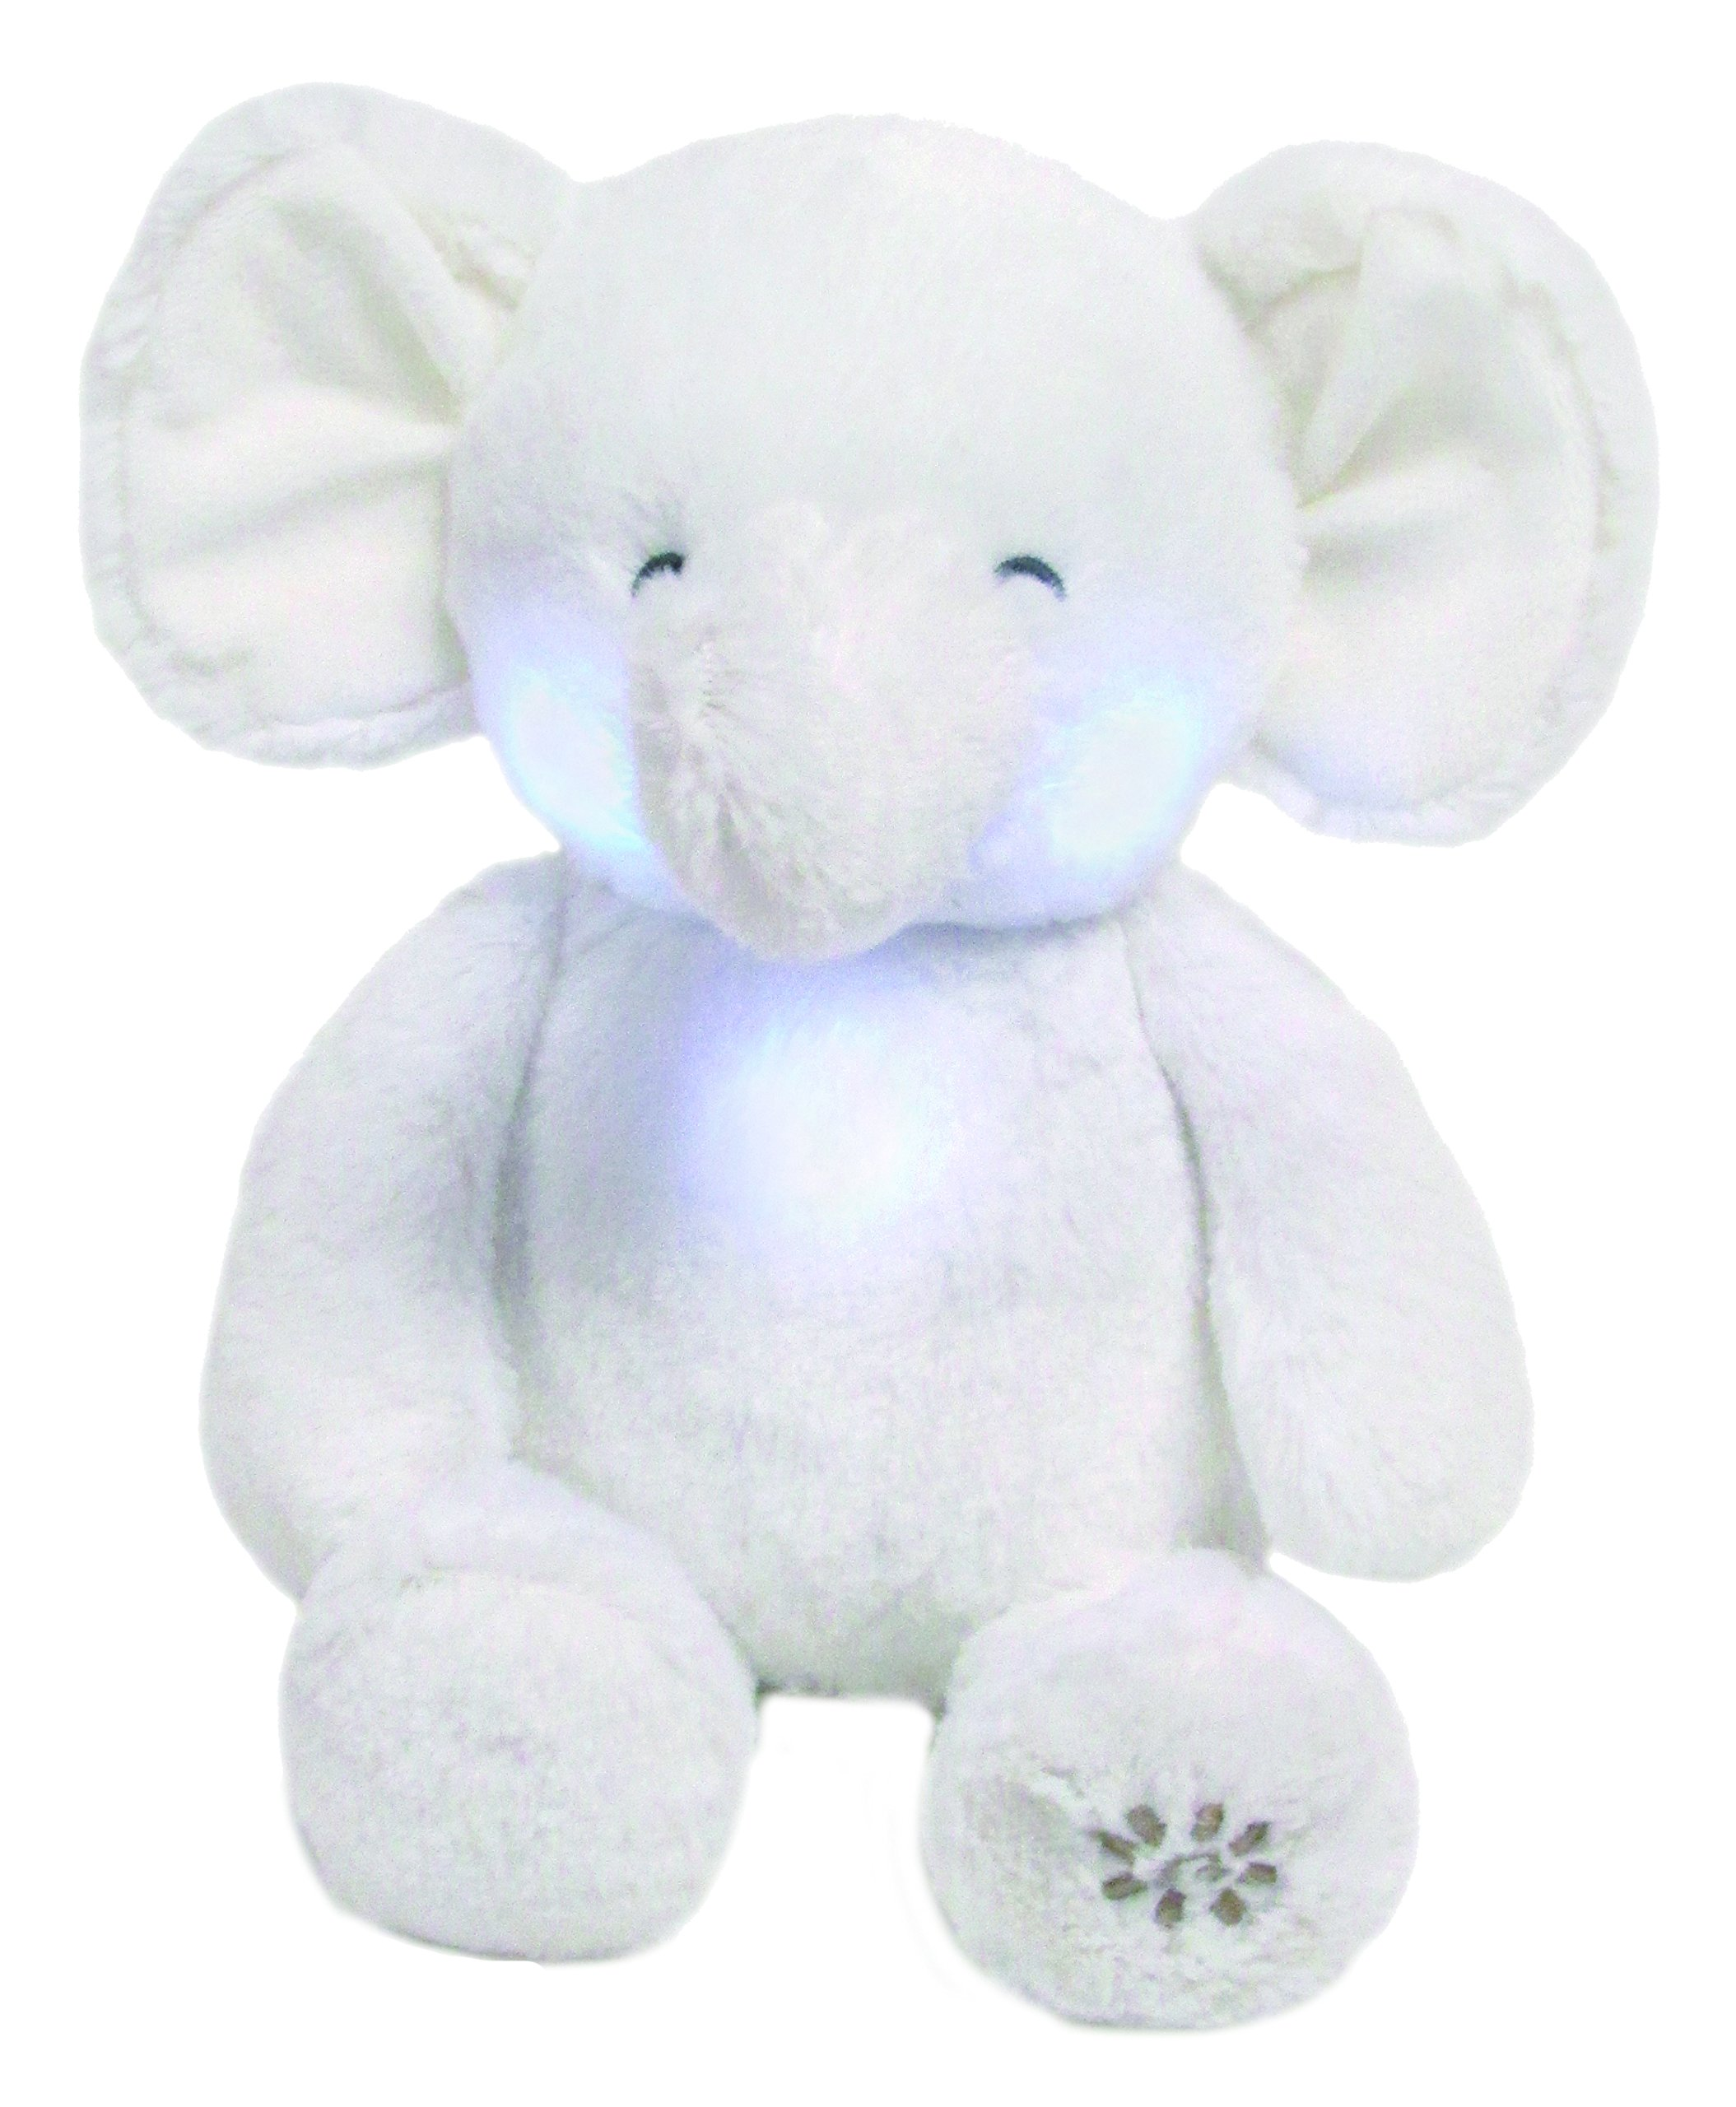 Carter's Music & Lights Elephant Plush Soother, 10.5''